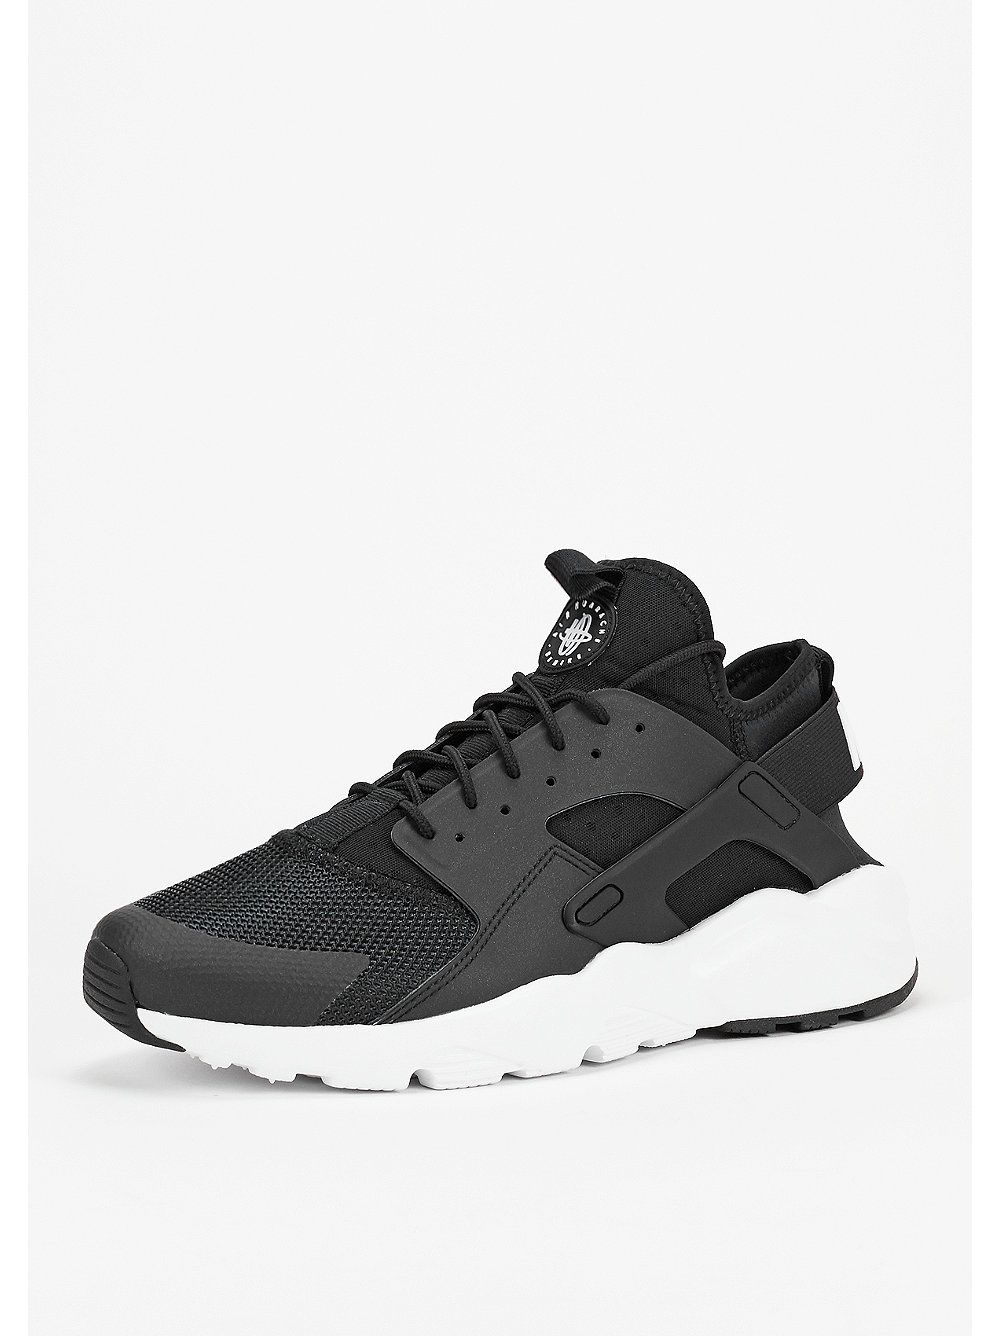 where to buy well known check out laufschuh air huarache run ultra black white anthracite